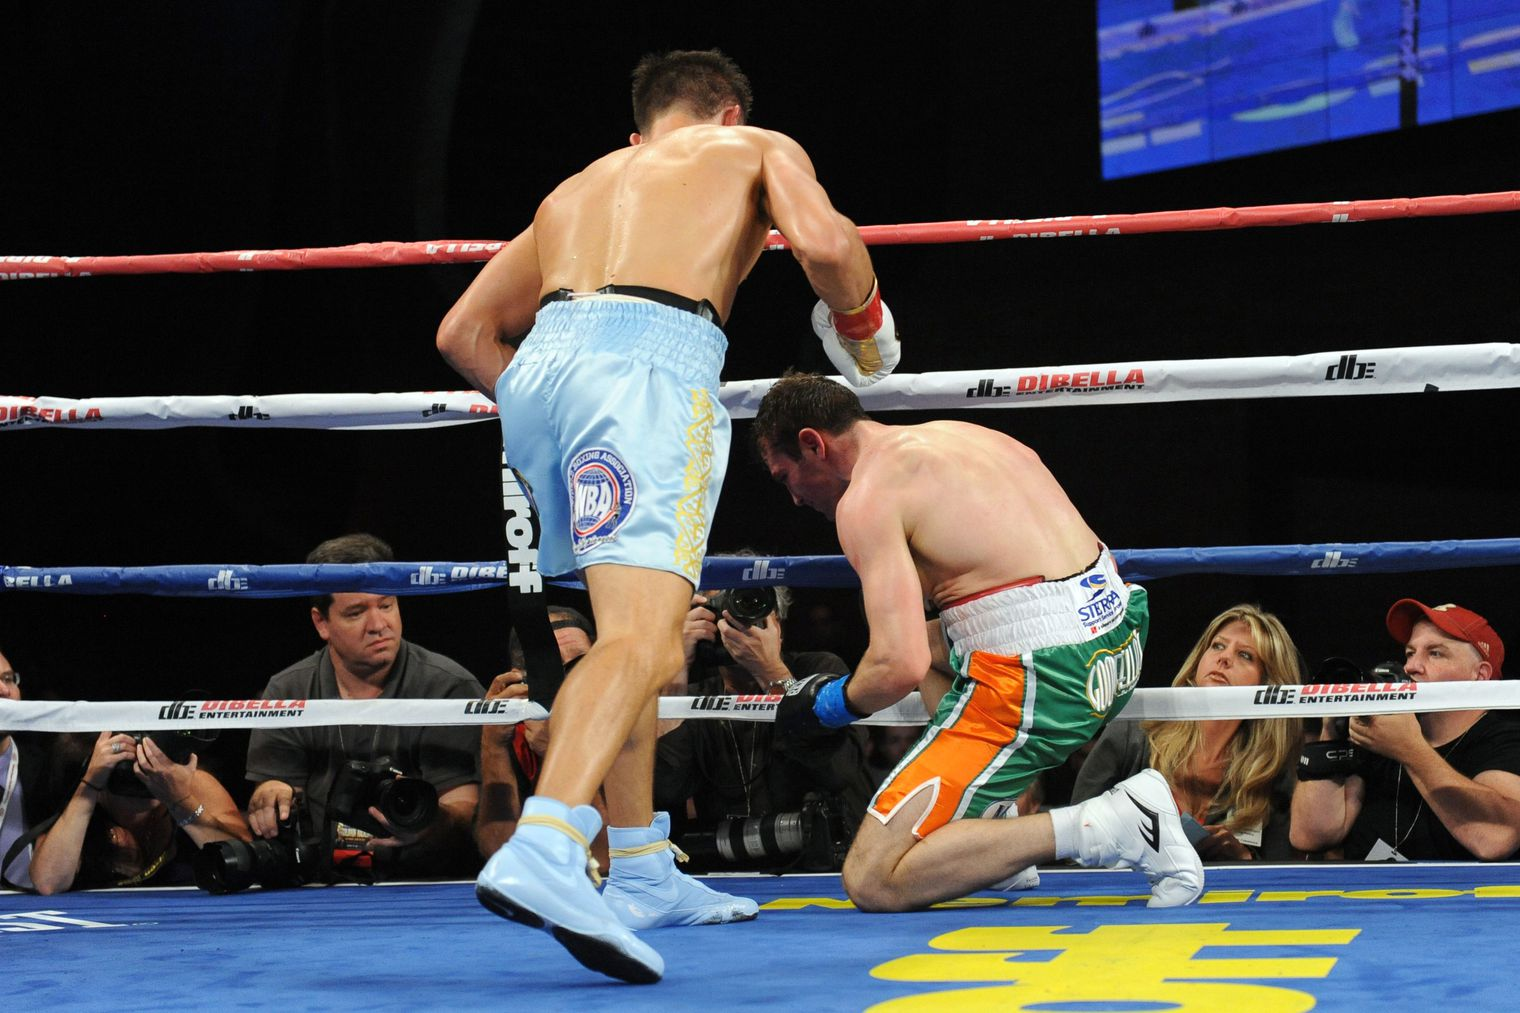 Boxing results: Gonzalez wows with TKO win Saturday